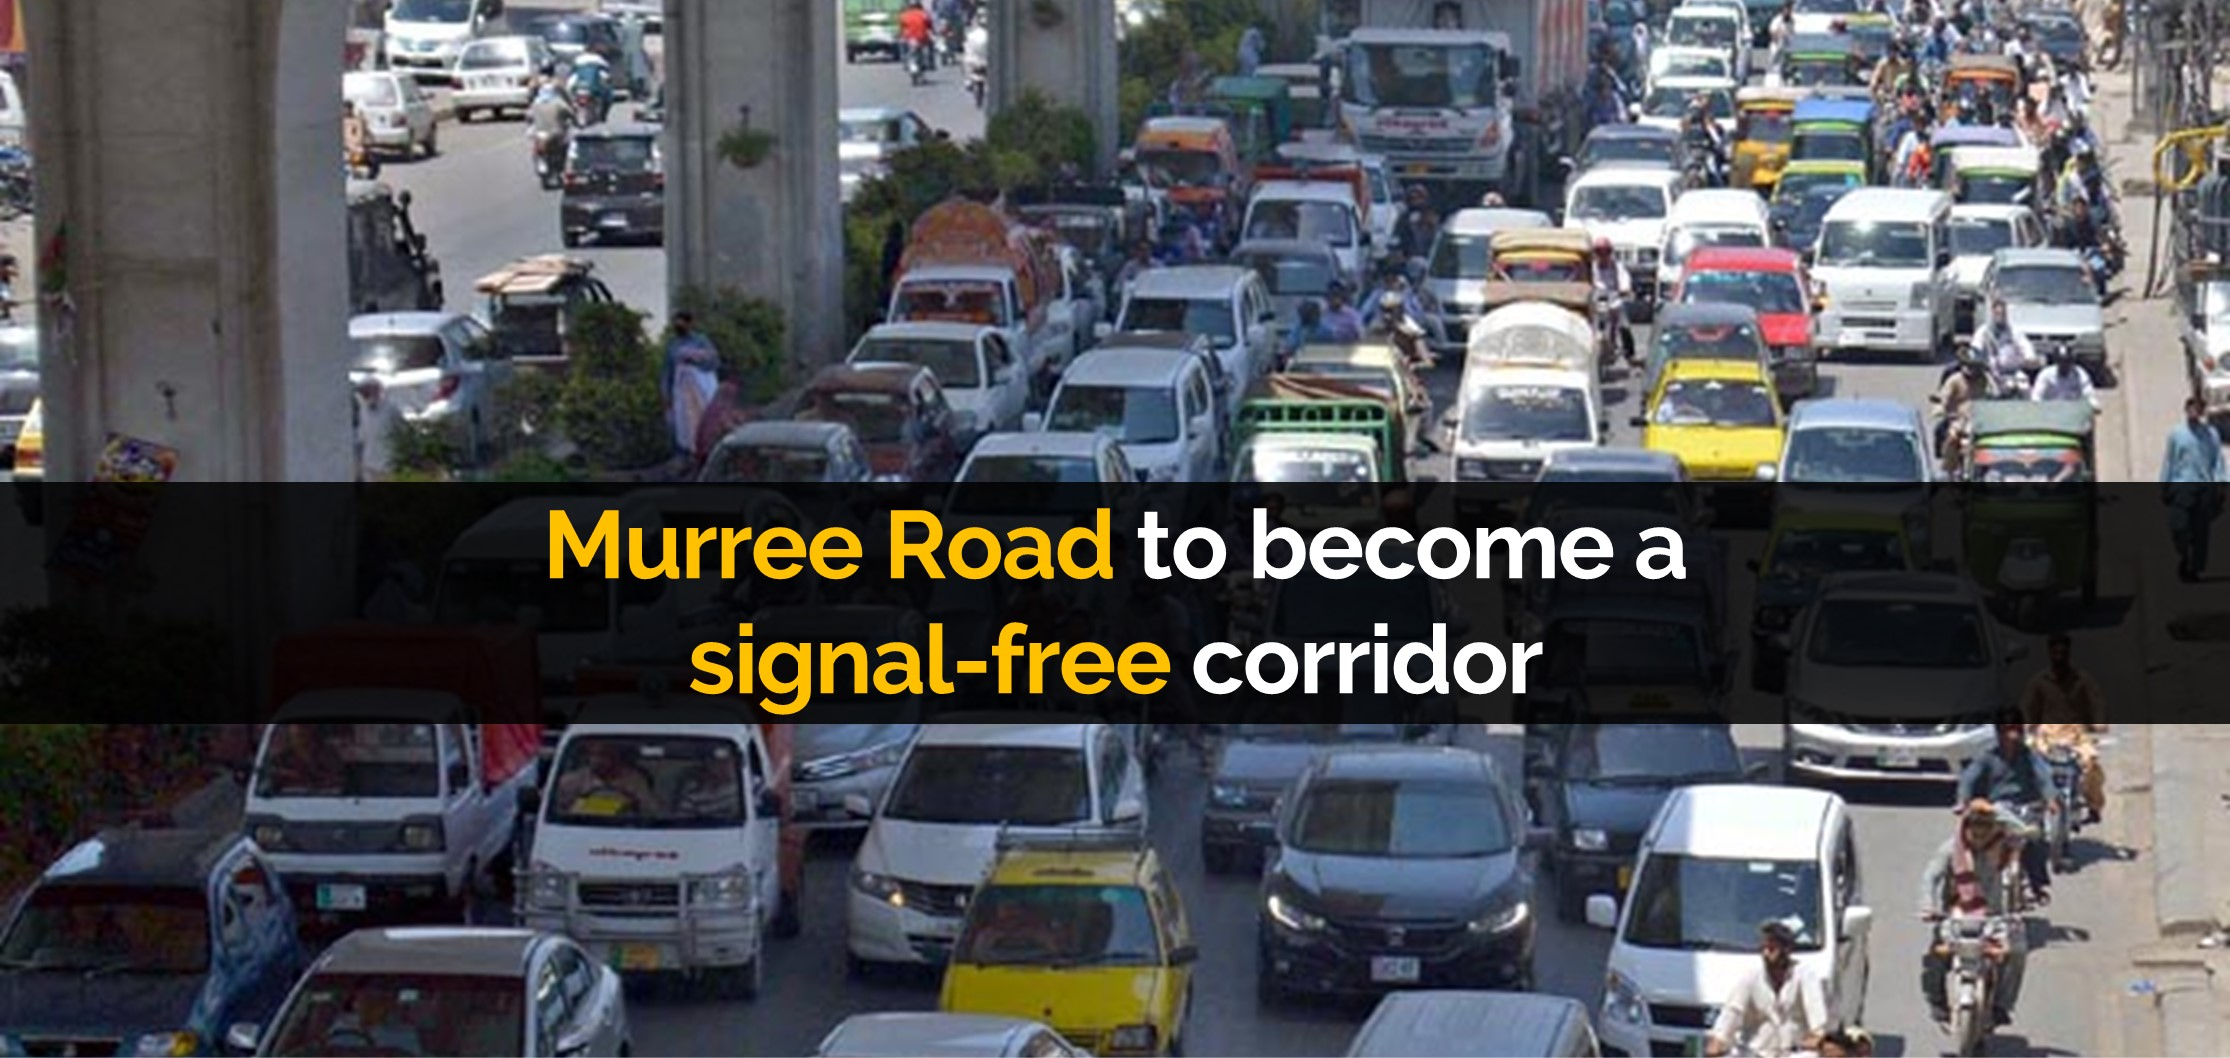 Murree Road to become a signal-free corridor